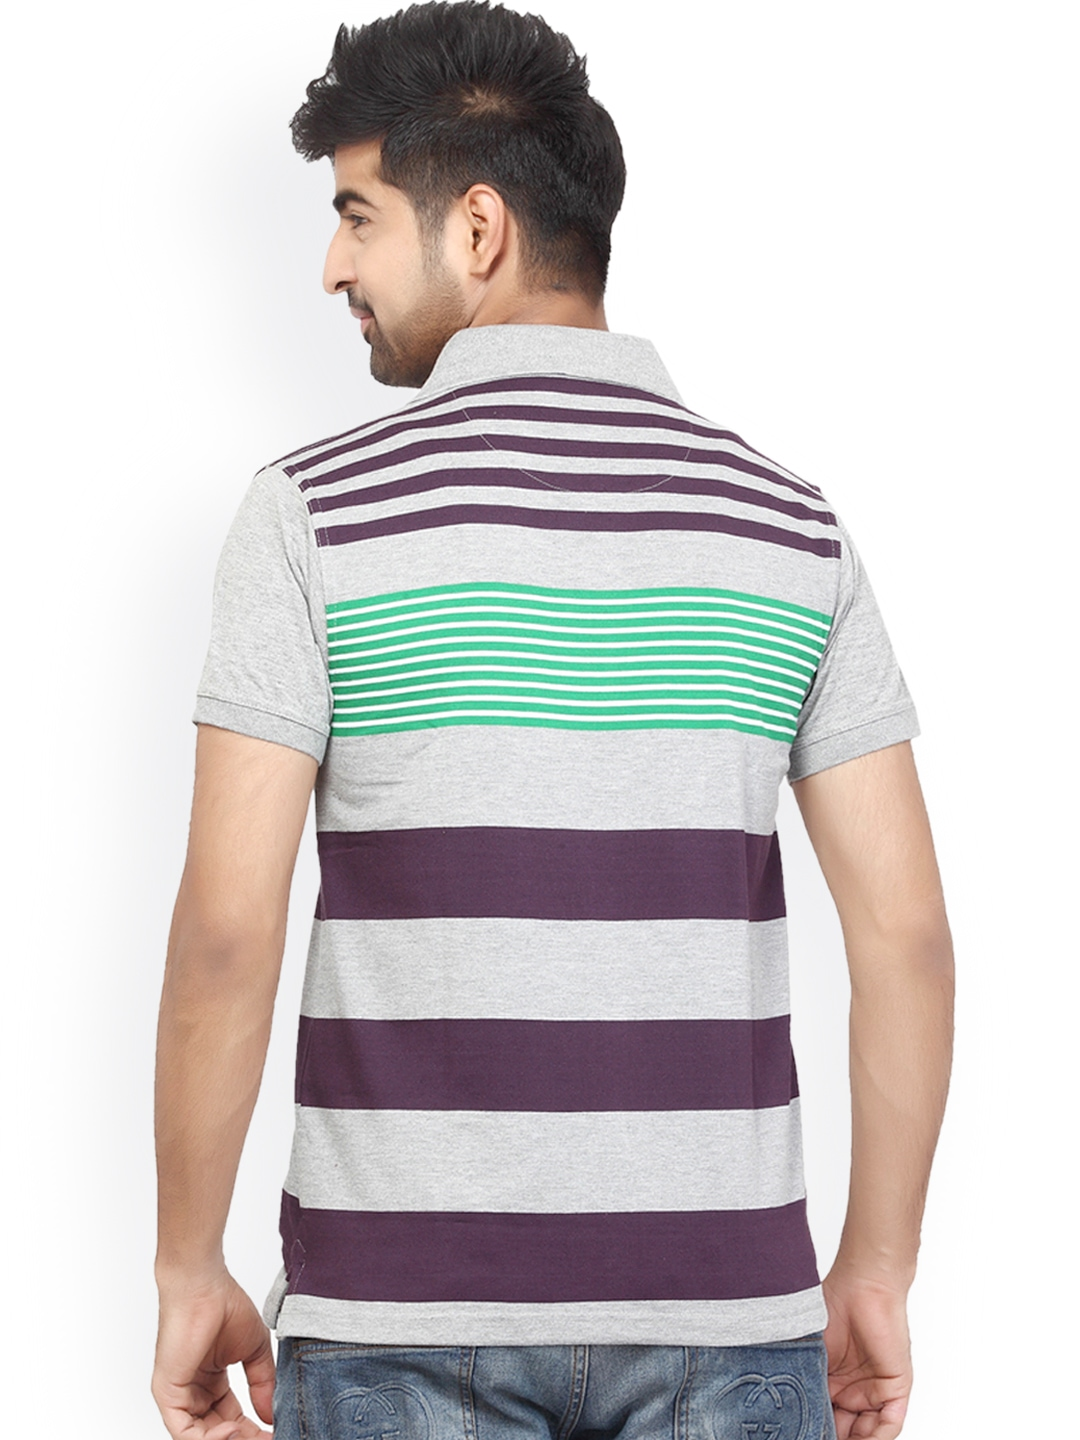 Myntra orange valley grey purple striped slim fit polo t for Purple and black striped t shirt